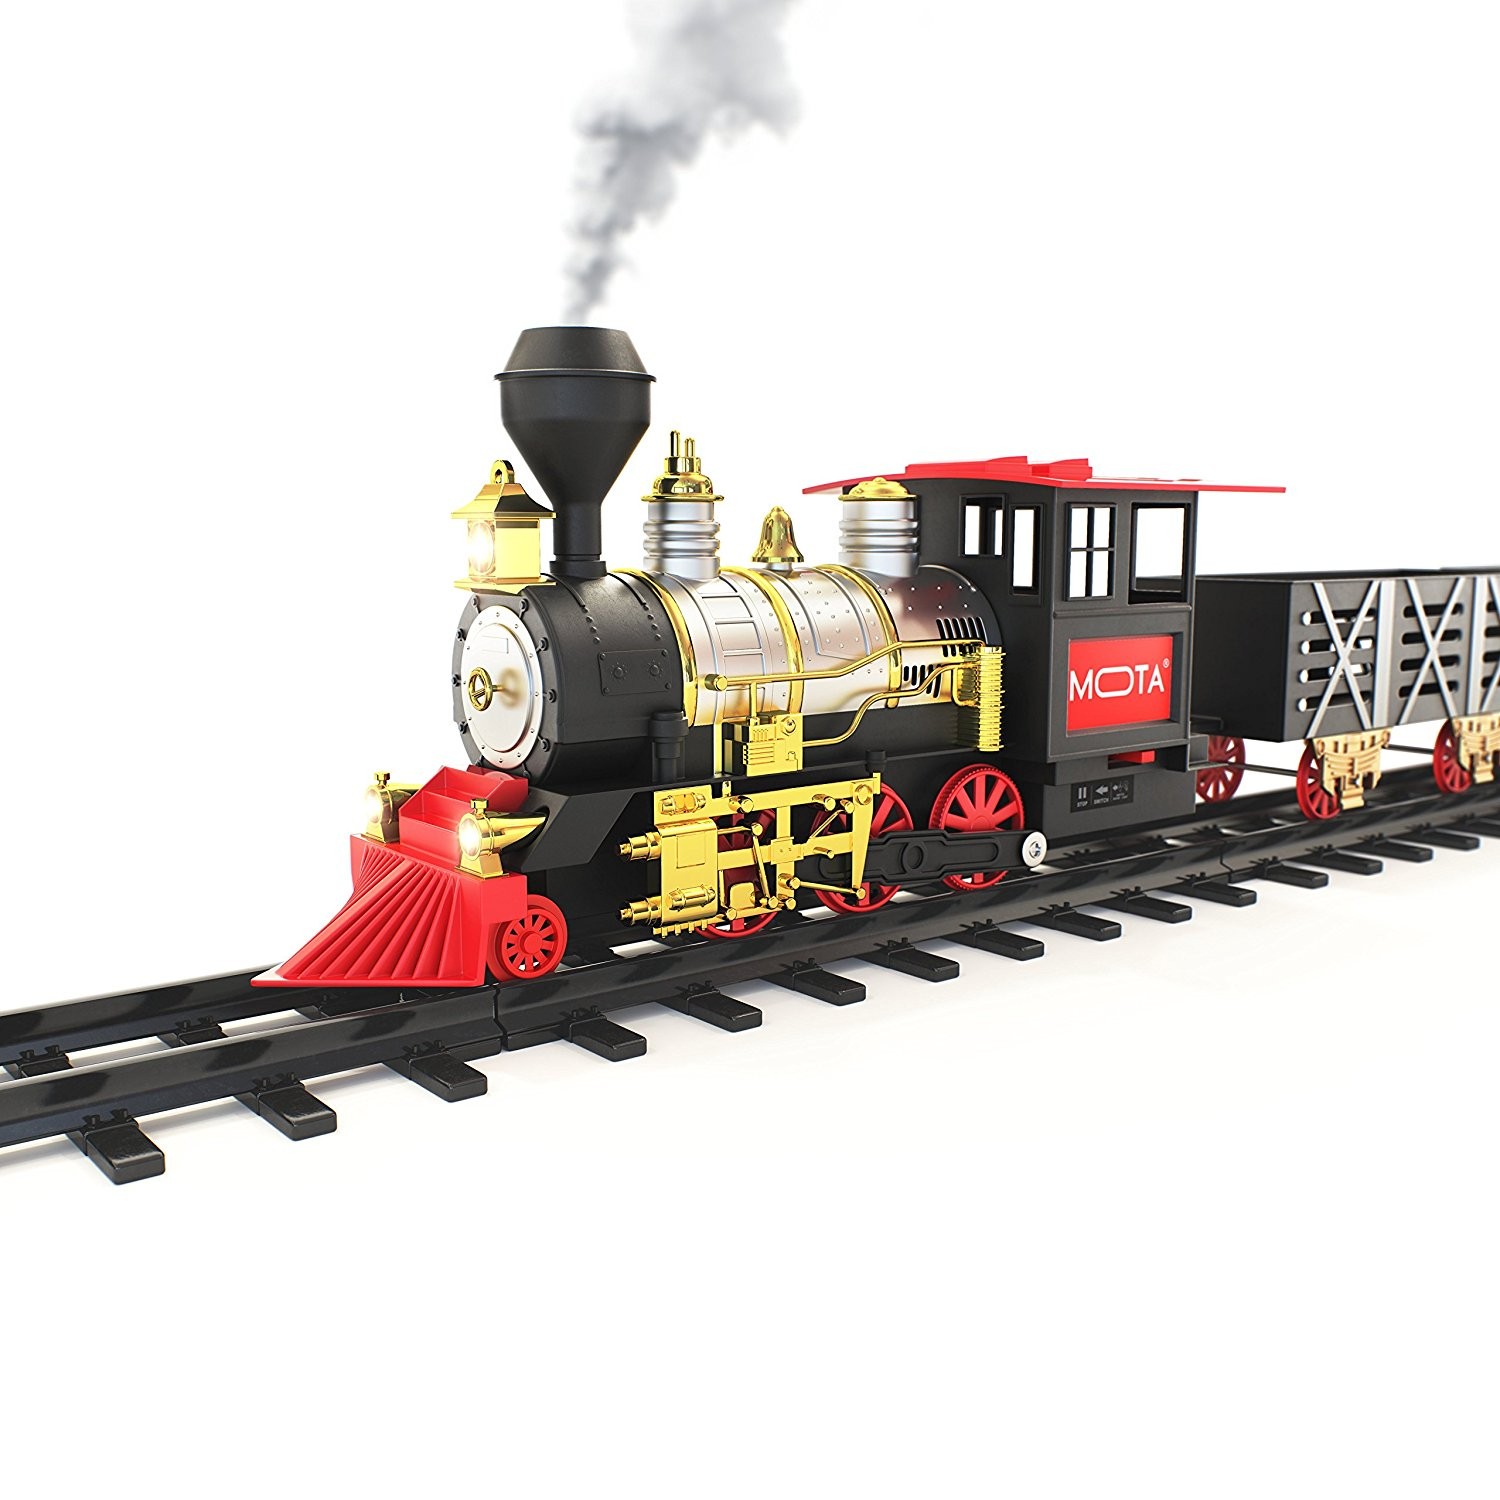 mota holiday train kit